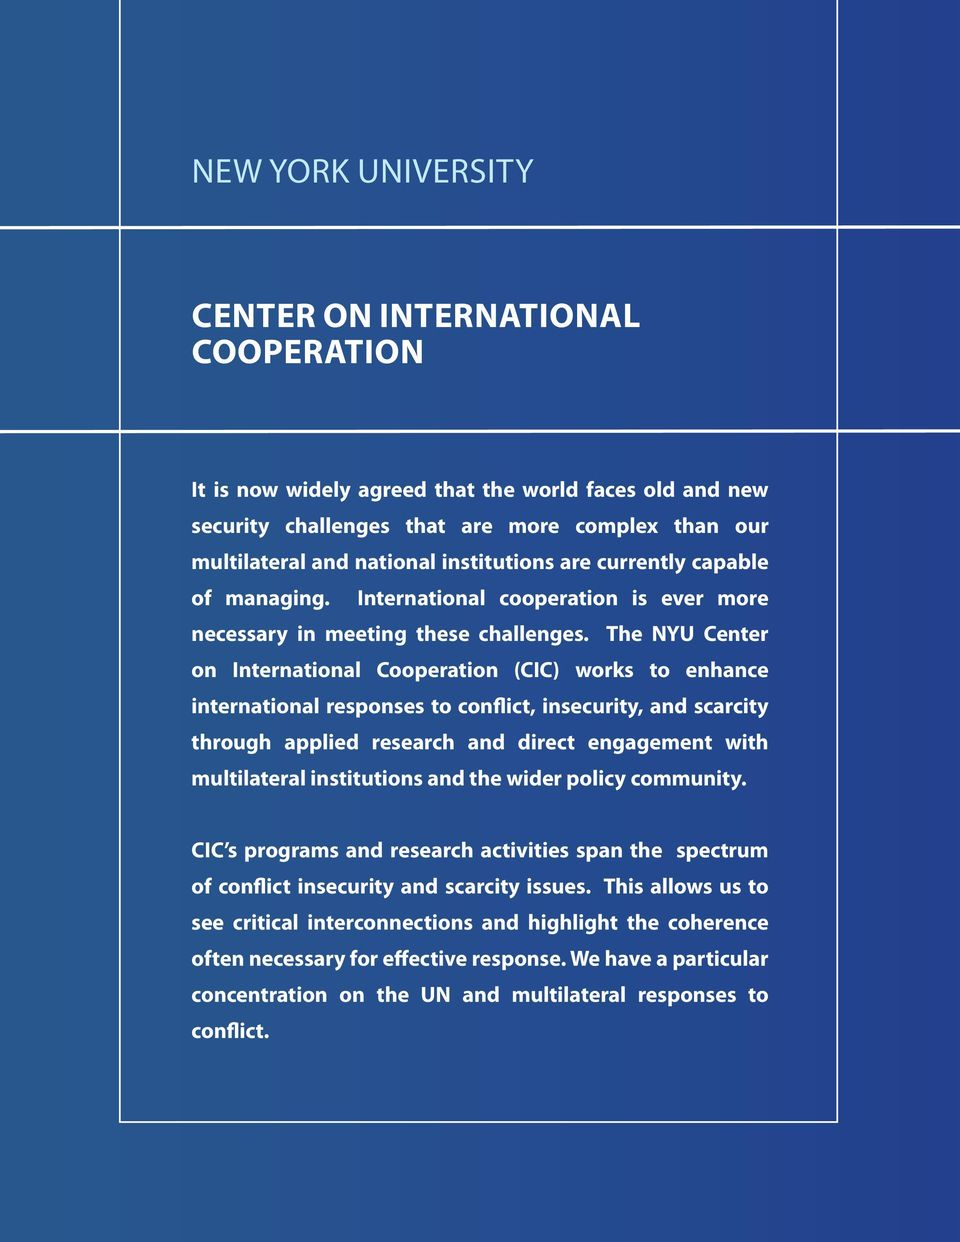 The Center on International Cooperation () works to enhance international responses to conflict, insecurity, and scarcity through applied research and direct engagement with multilateral institutions